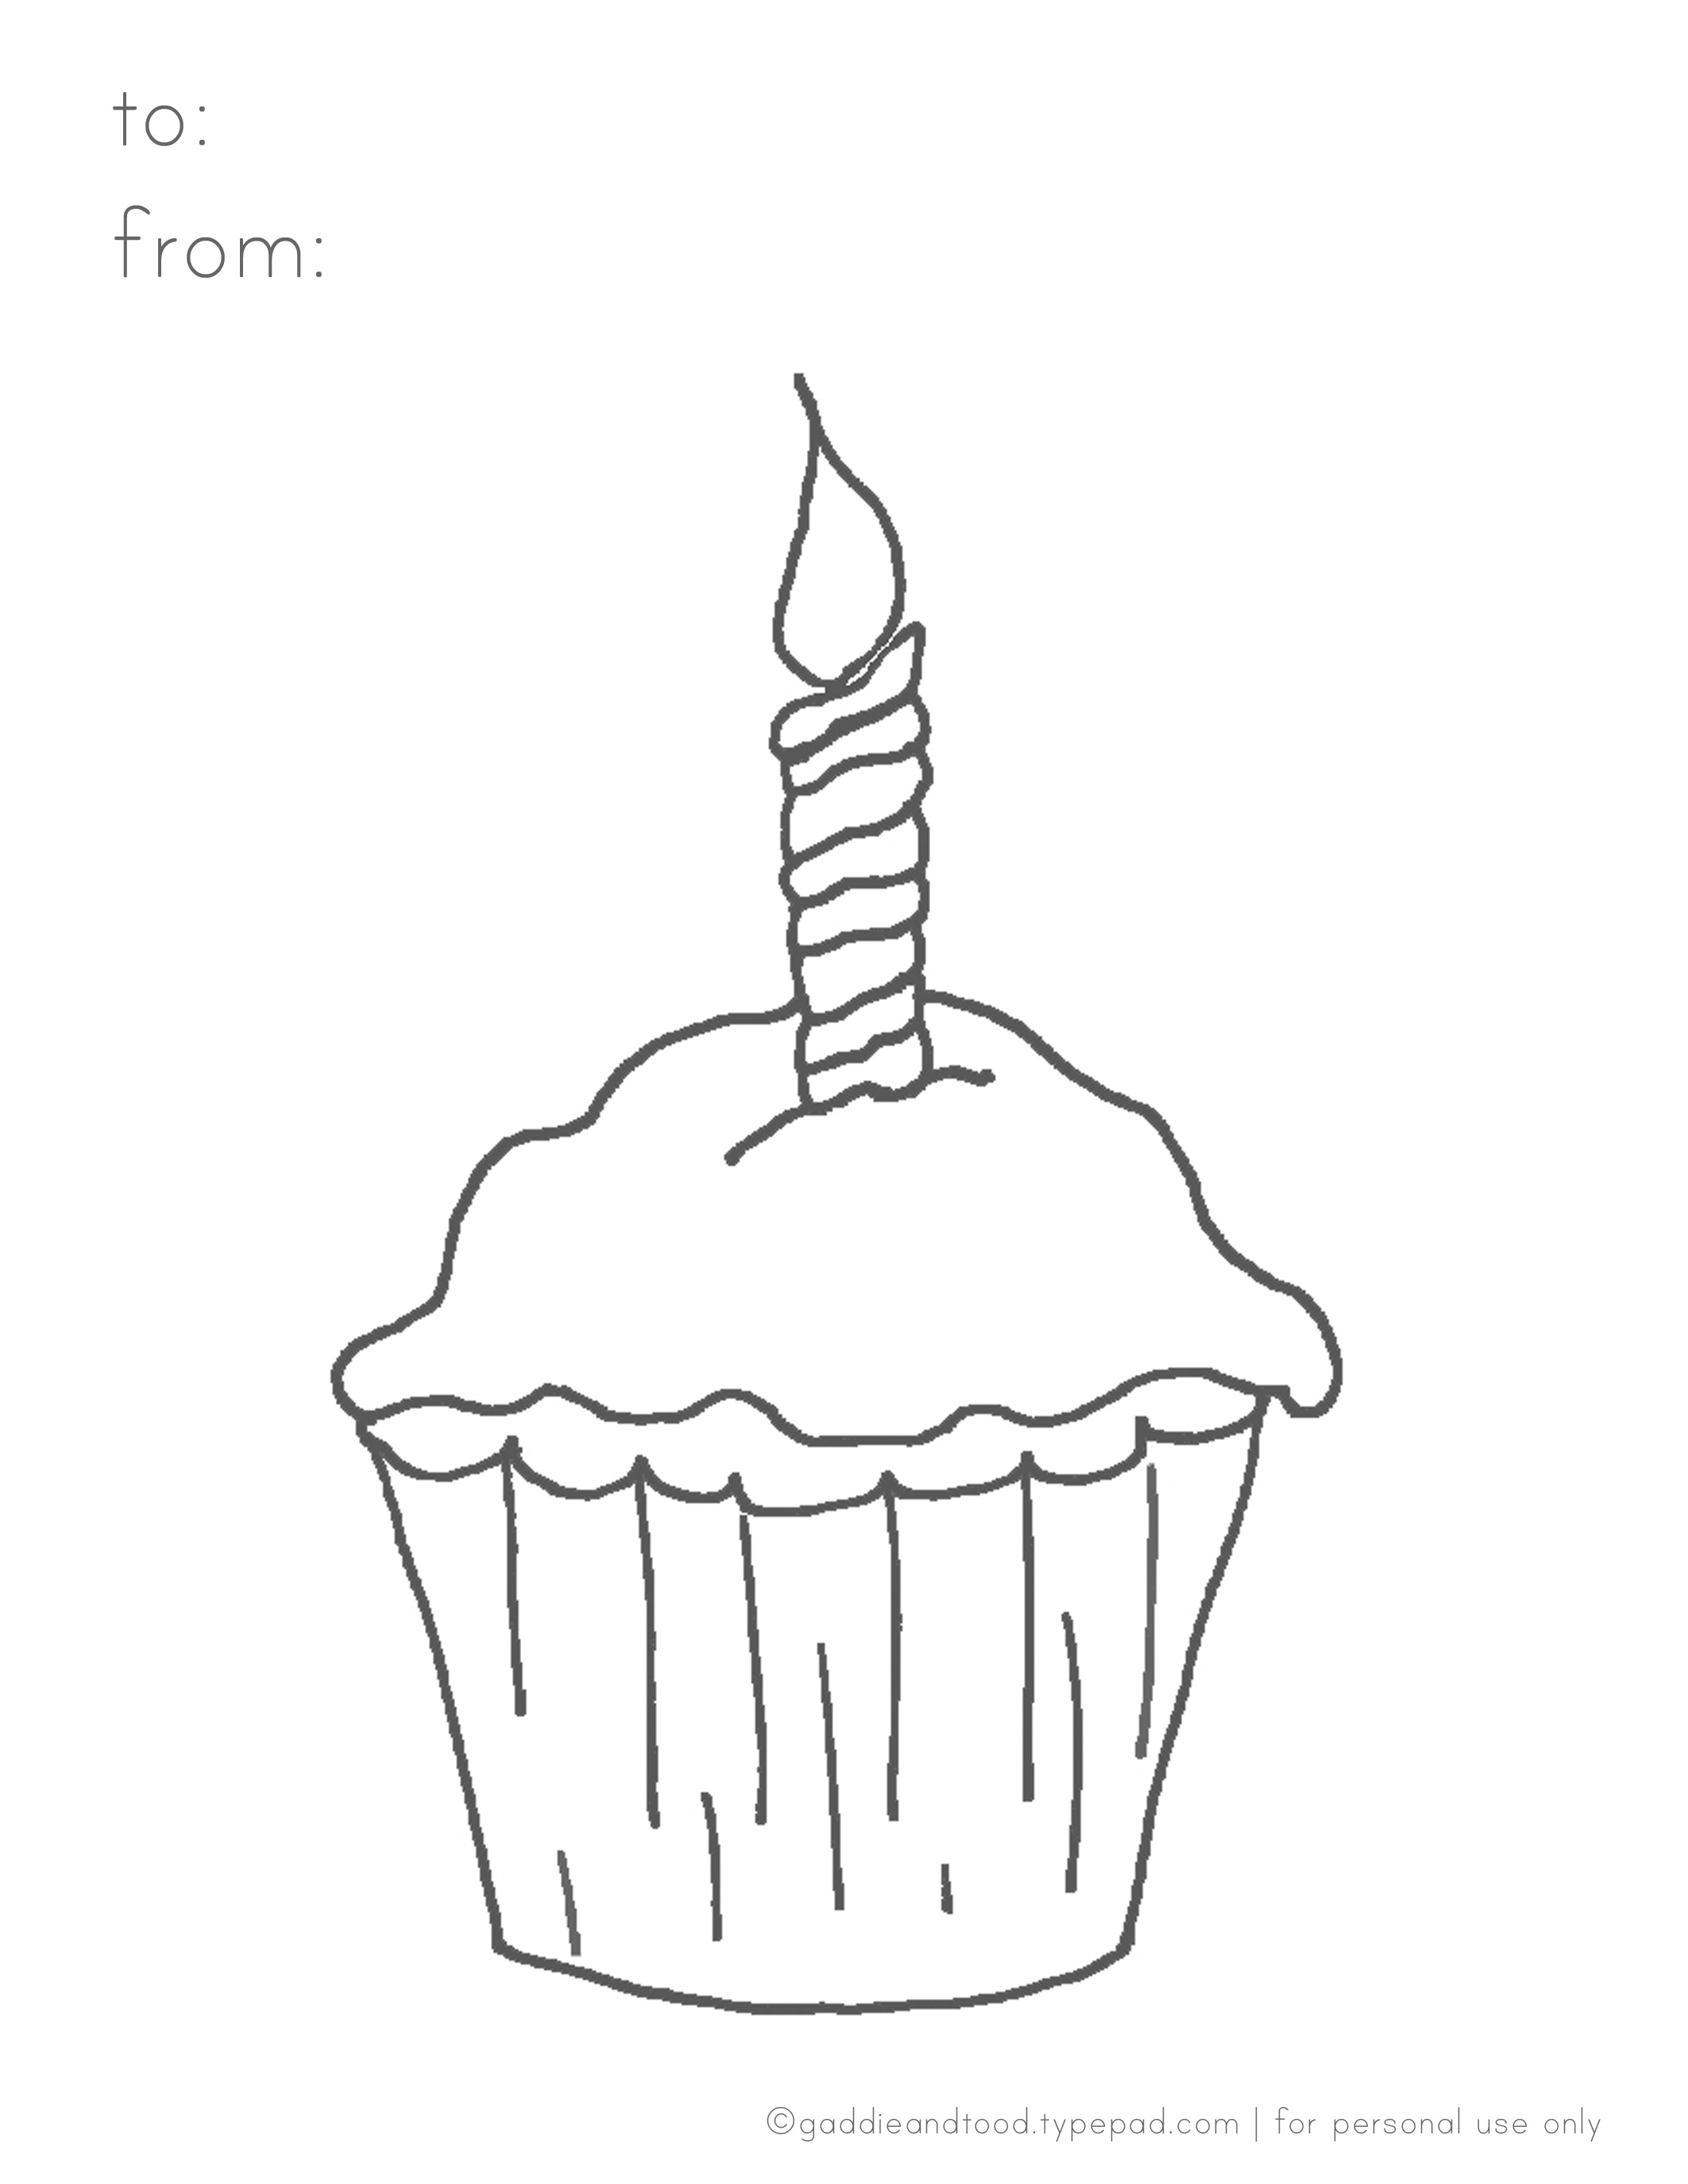 Printable coloring pages cupcakes - Cupcake Coloring Page Gaddie Tood Blog Printable Party Sketch Template Cupcake Candle Coloring Page